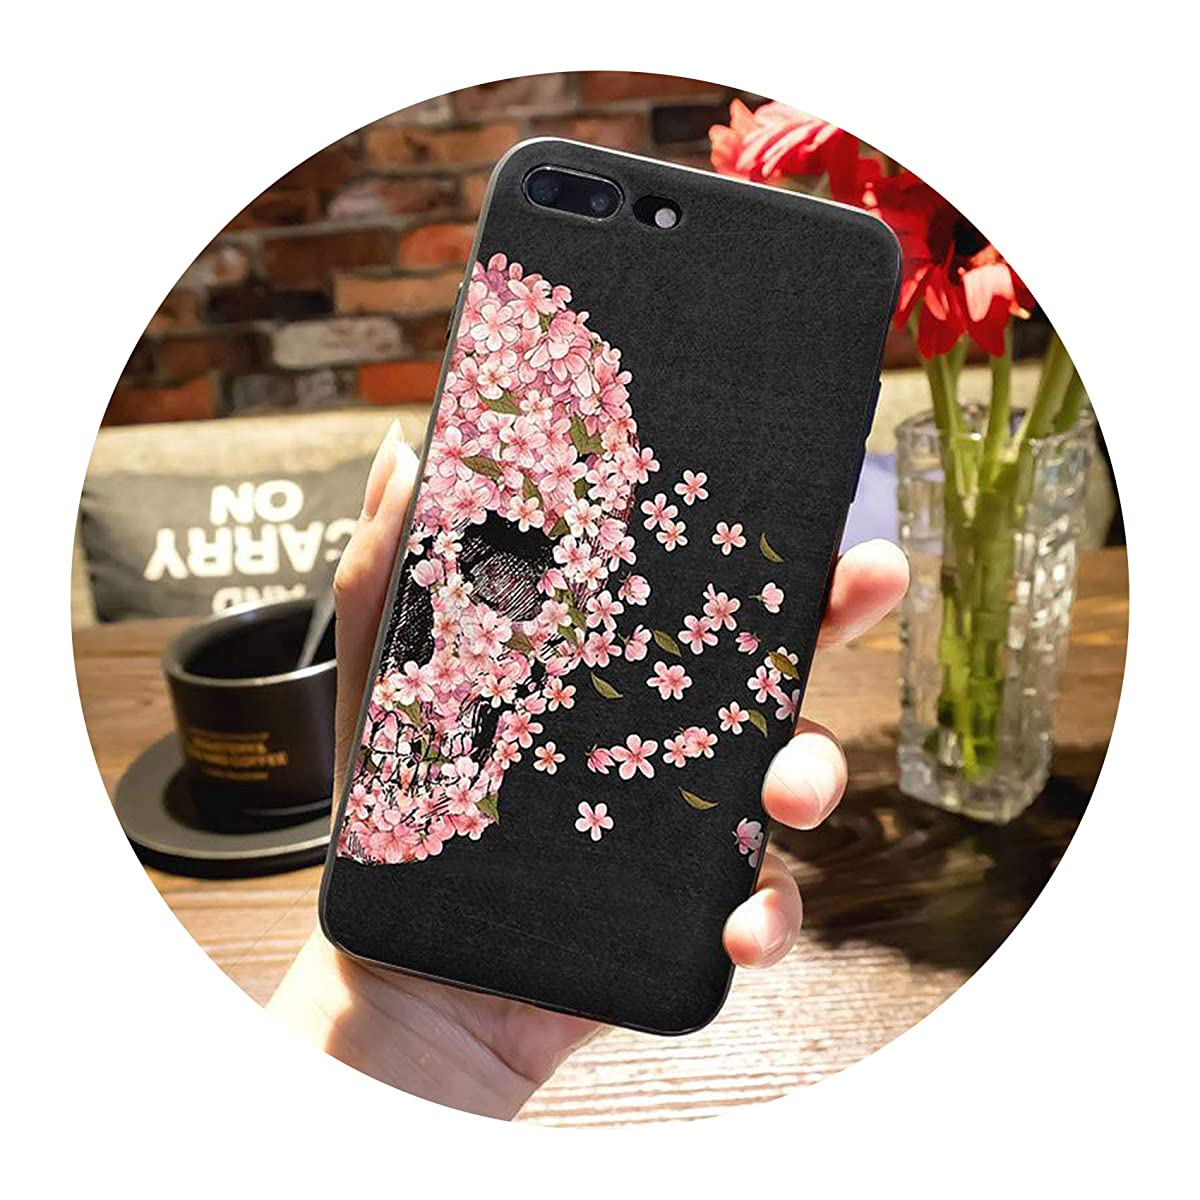 Mexican Skull Girl Tattoo Art Top Detailed Popular Case for iPhone 7plus X XS XR XS MAX 6 6S 7 8 8 Plus 5 5S case,5,for iPhone 5 5s SE